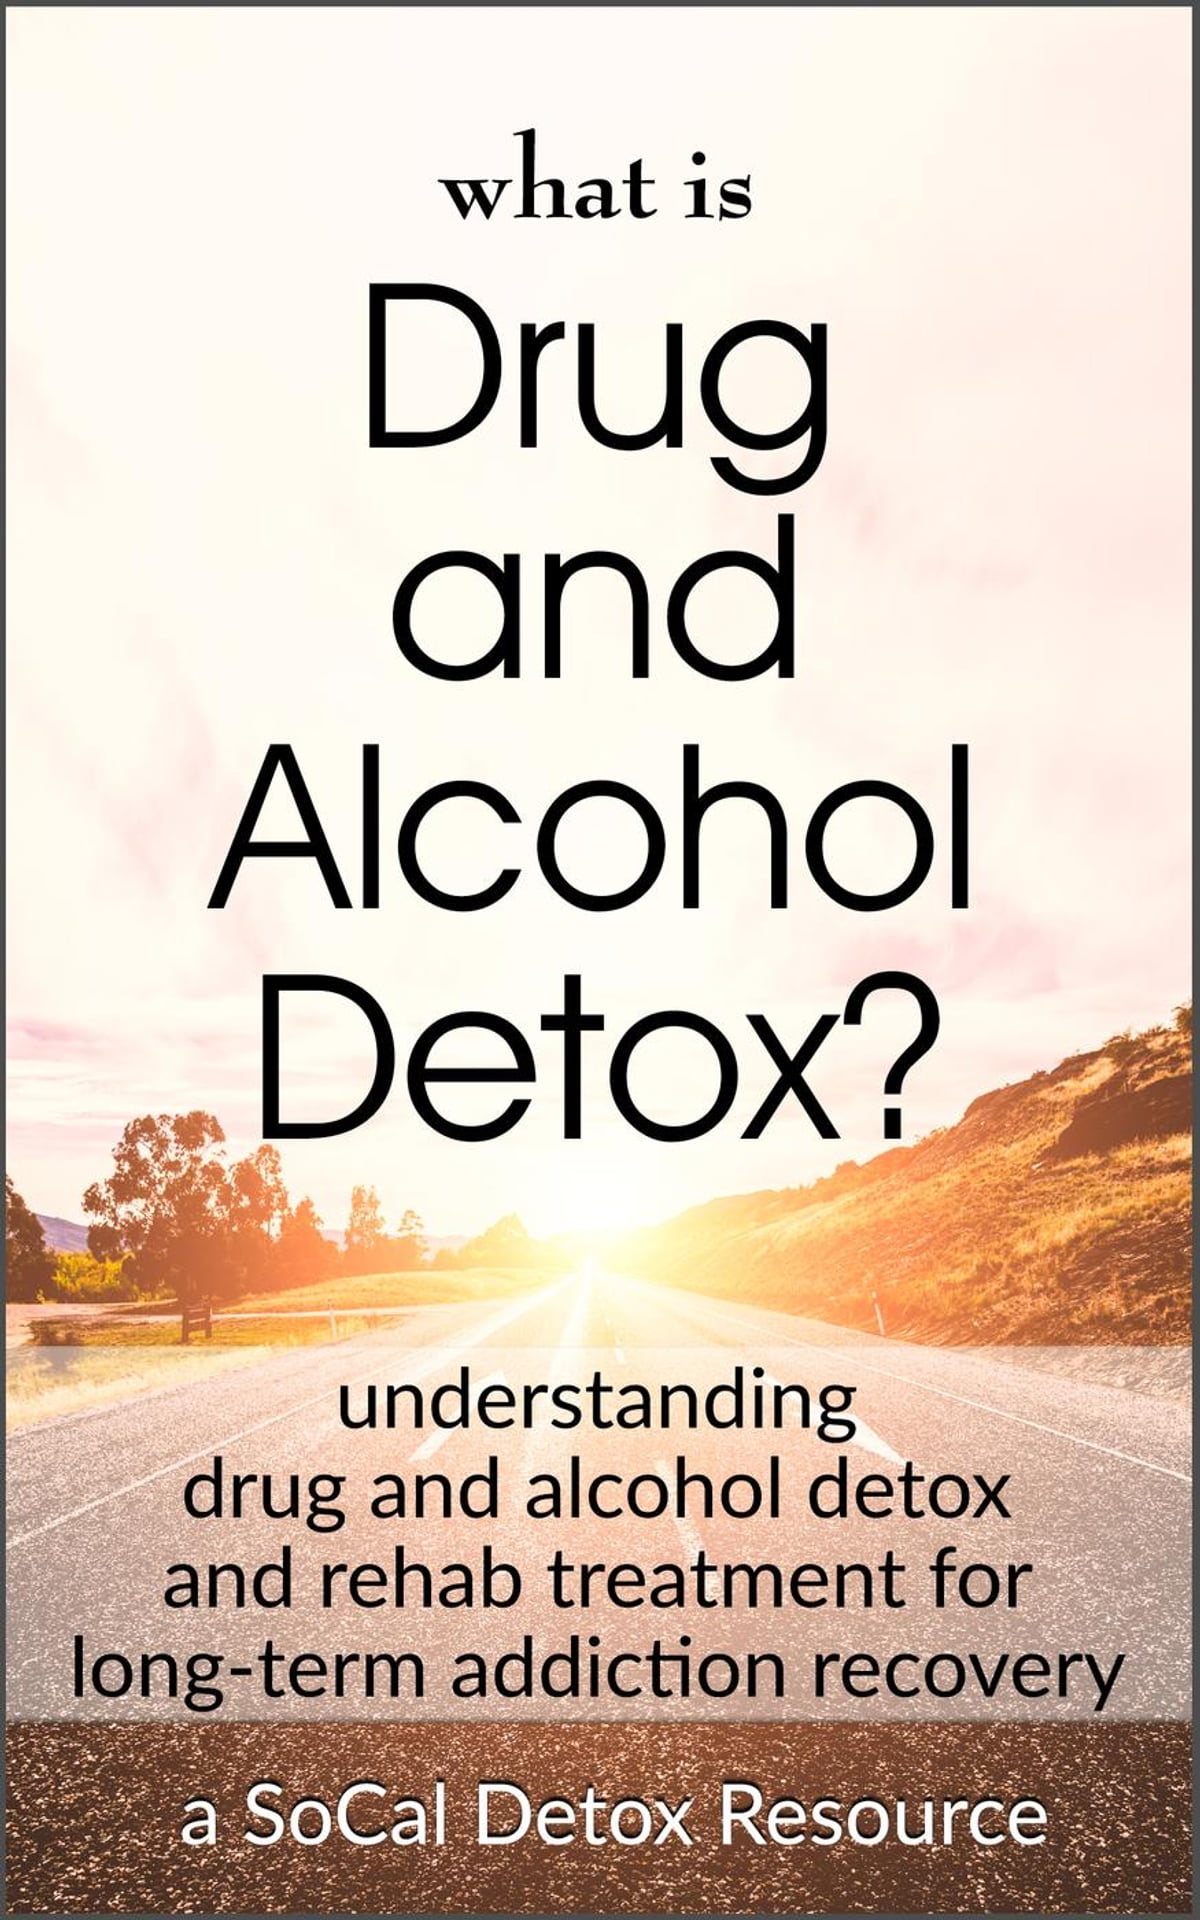 What Is Drug and Alcohol Detox? eBook by SoCal Detox | Rakuten Kobo